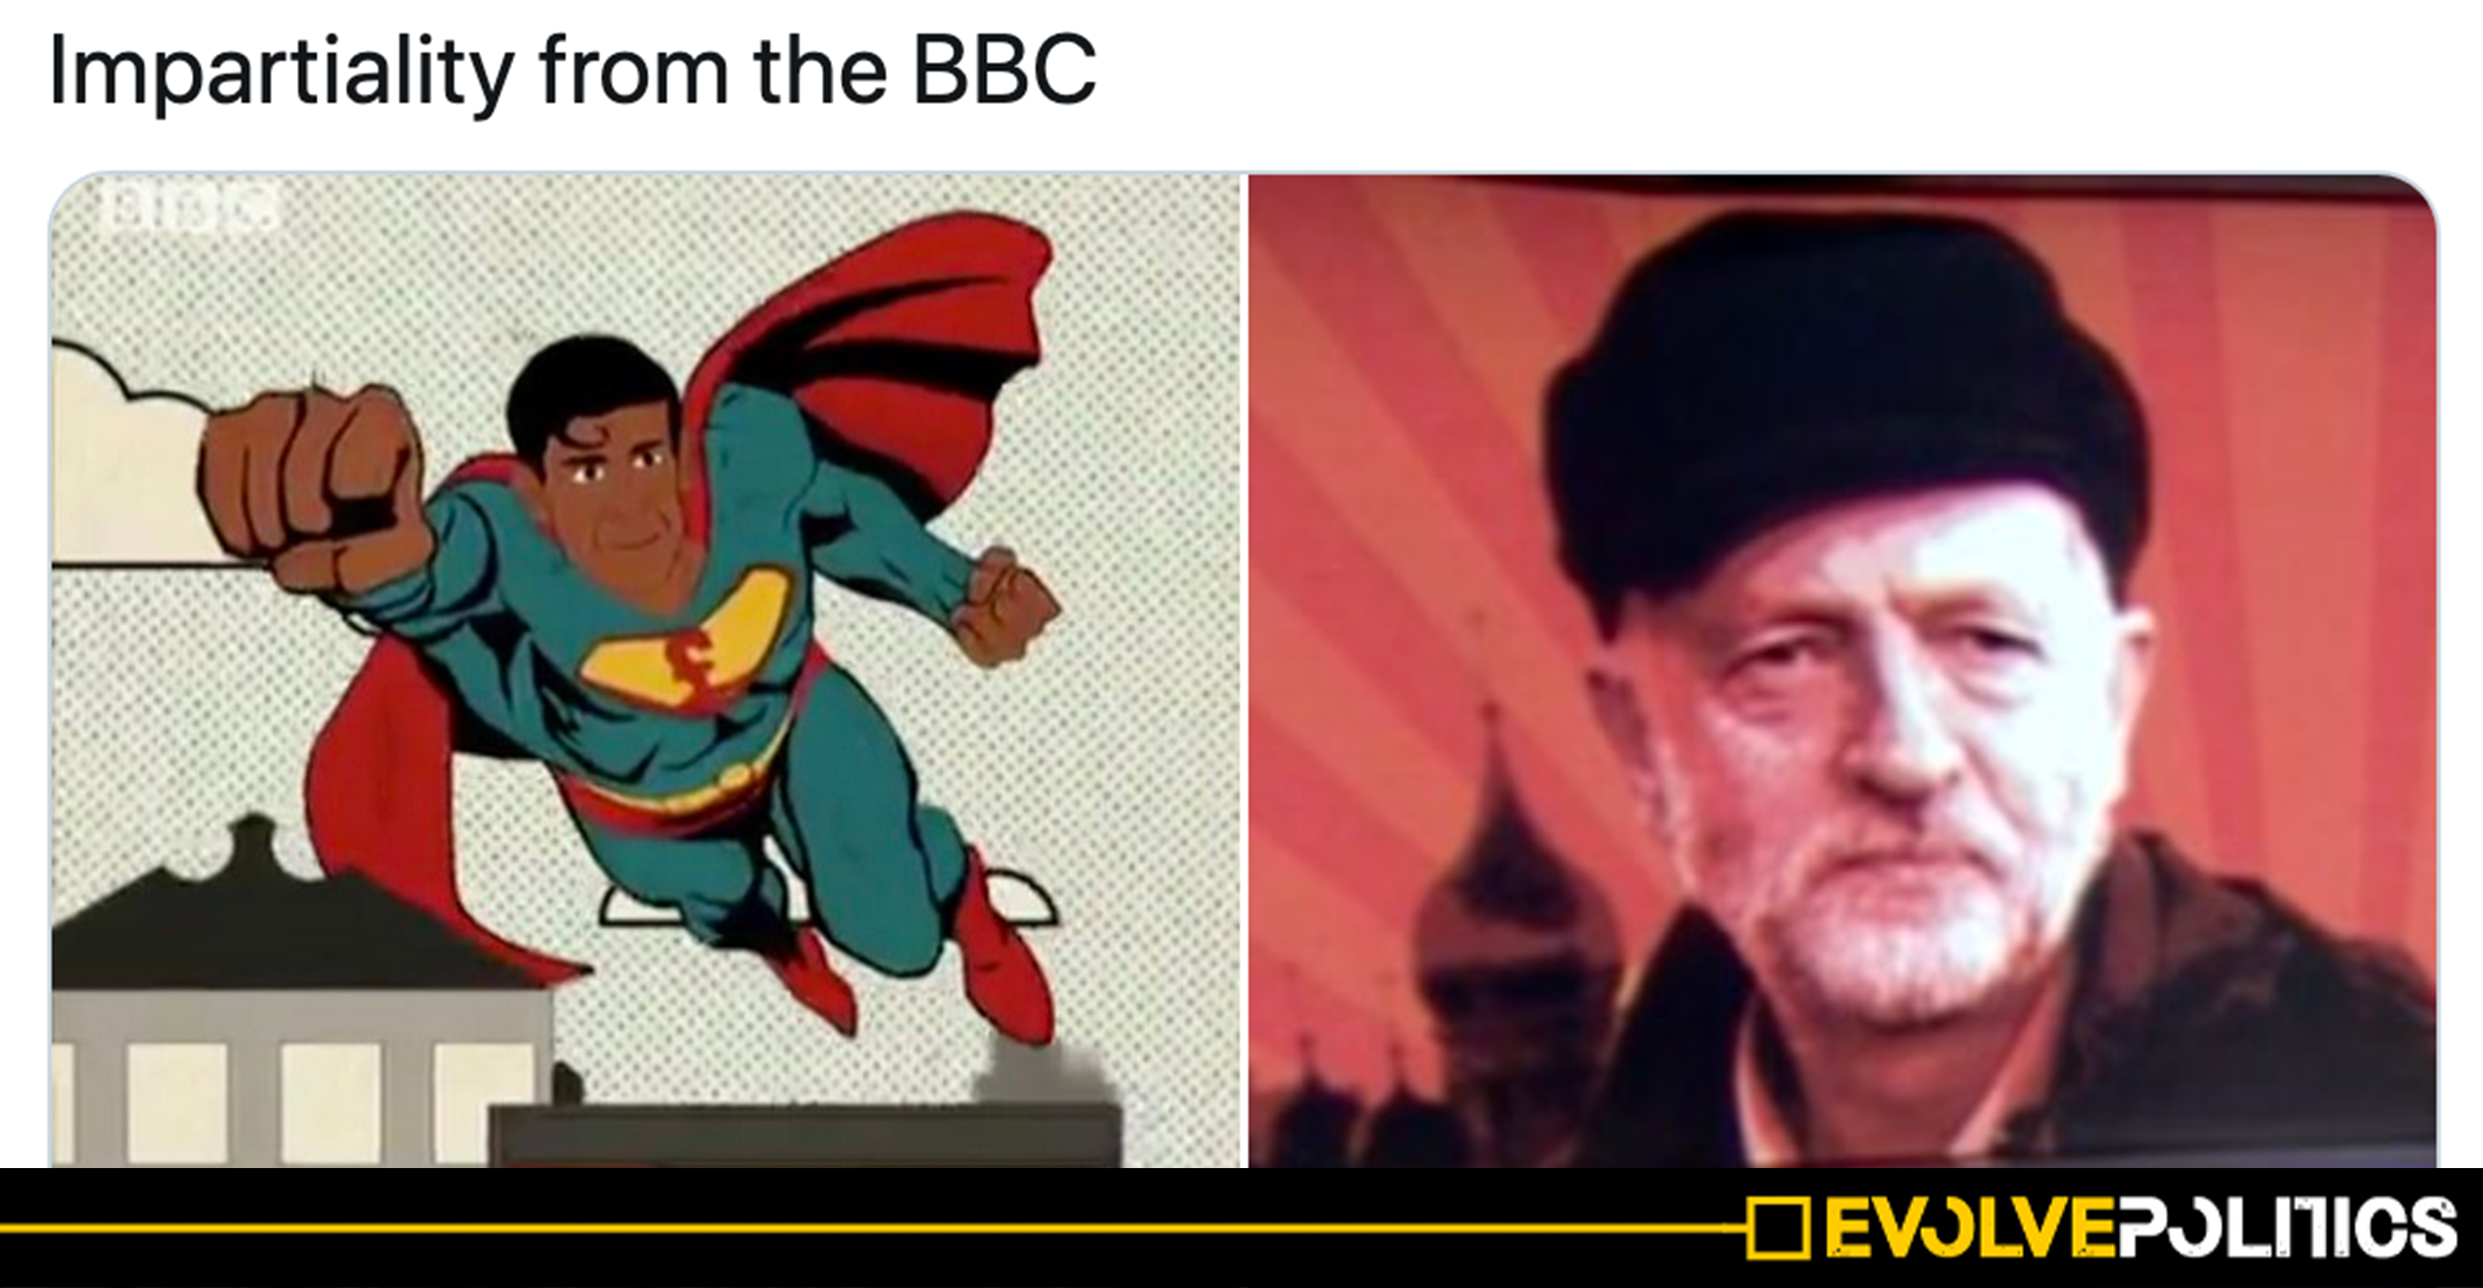 BBC forced to delete 'blatant propaganda' cartoon portraying Tory Chancellor as a SUPERHERO